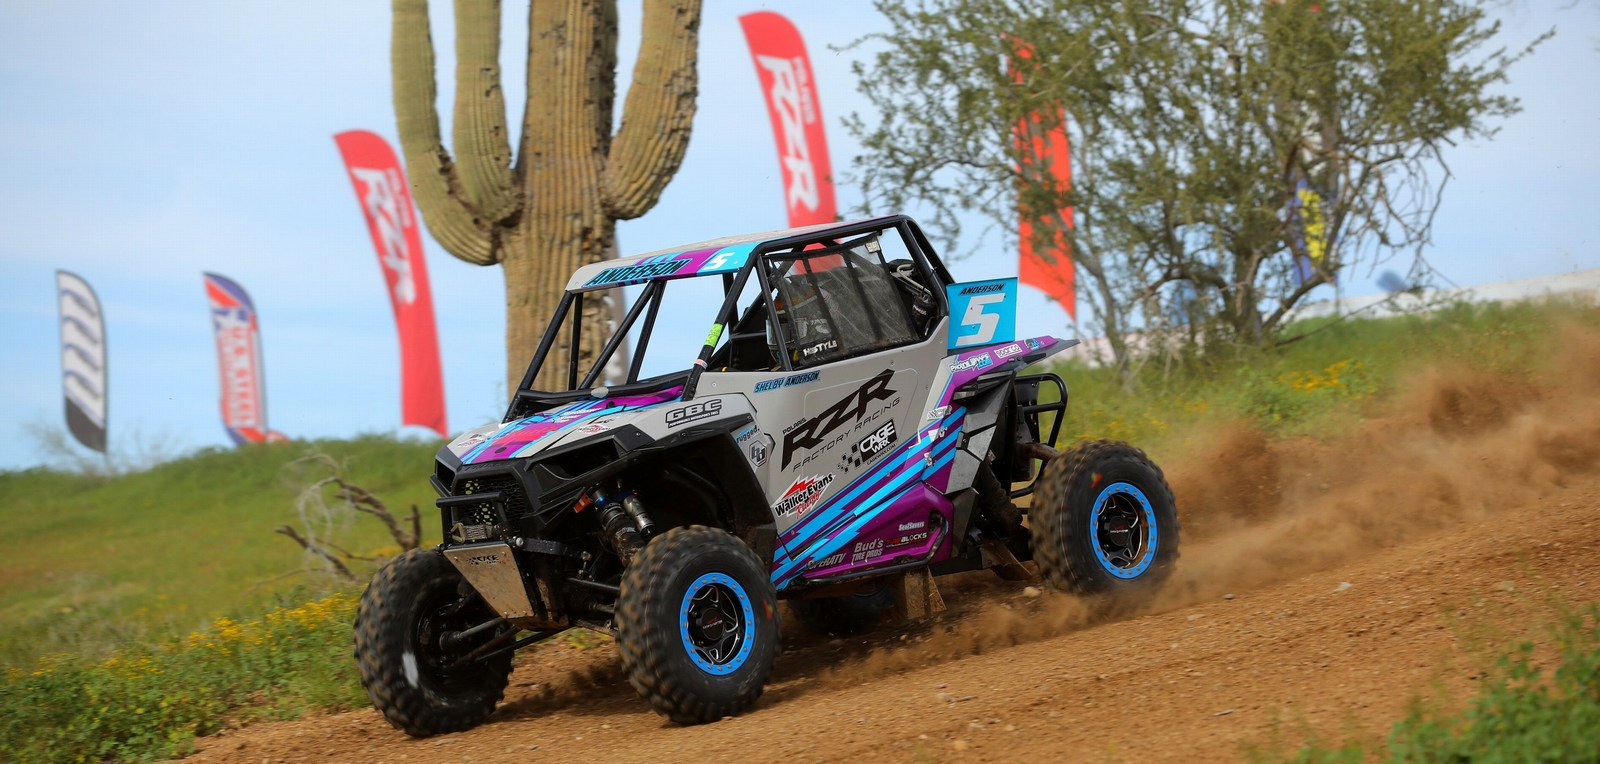 2019-03-shelby-anderson-sxs-worcs-racing